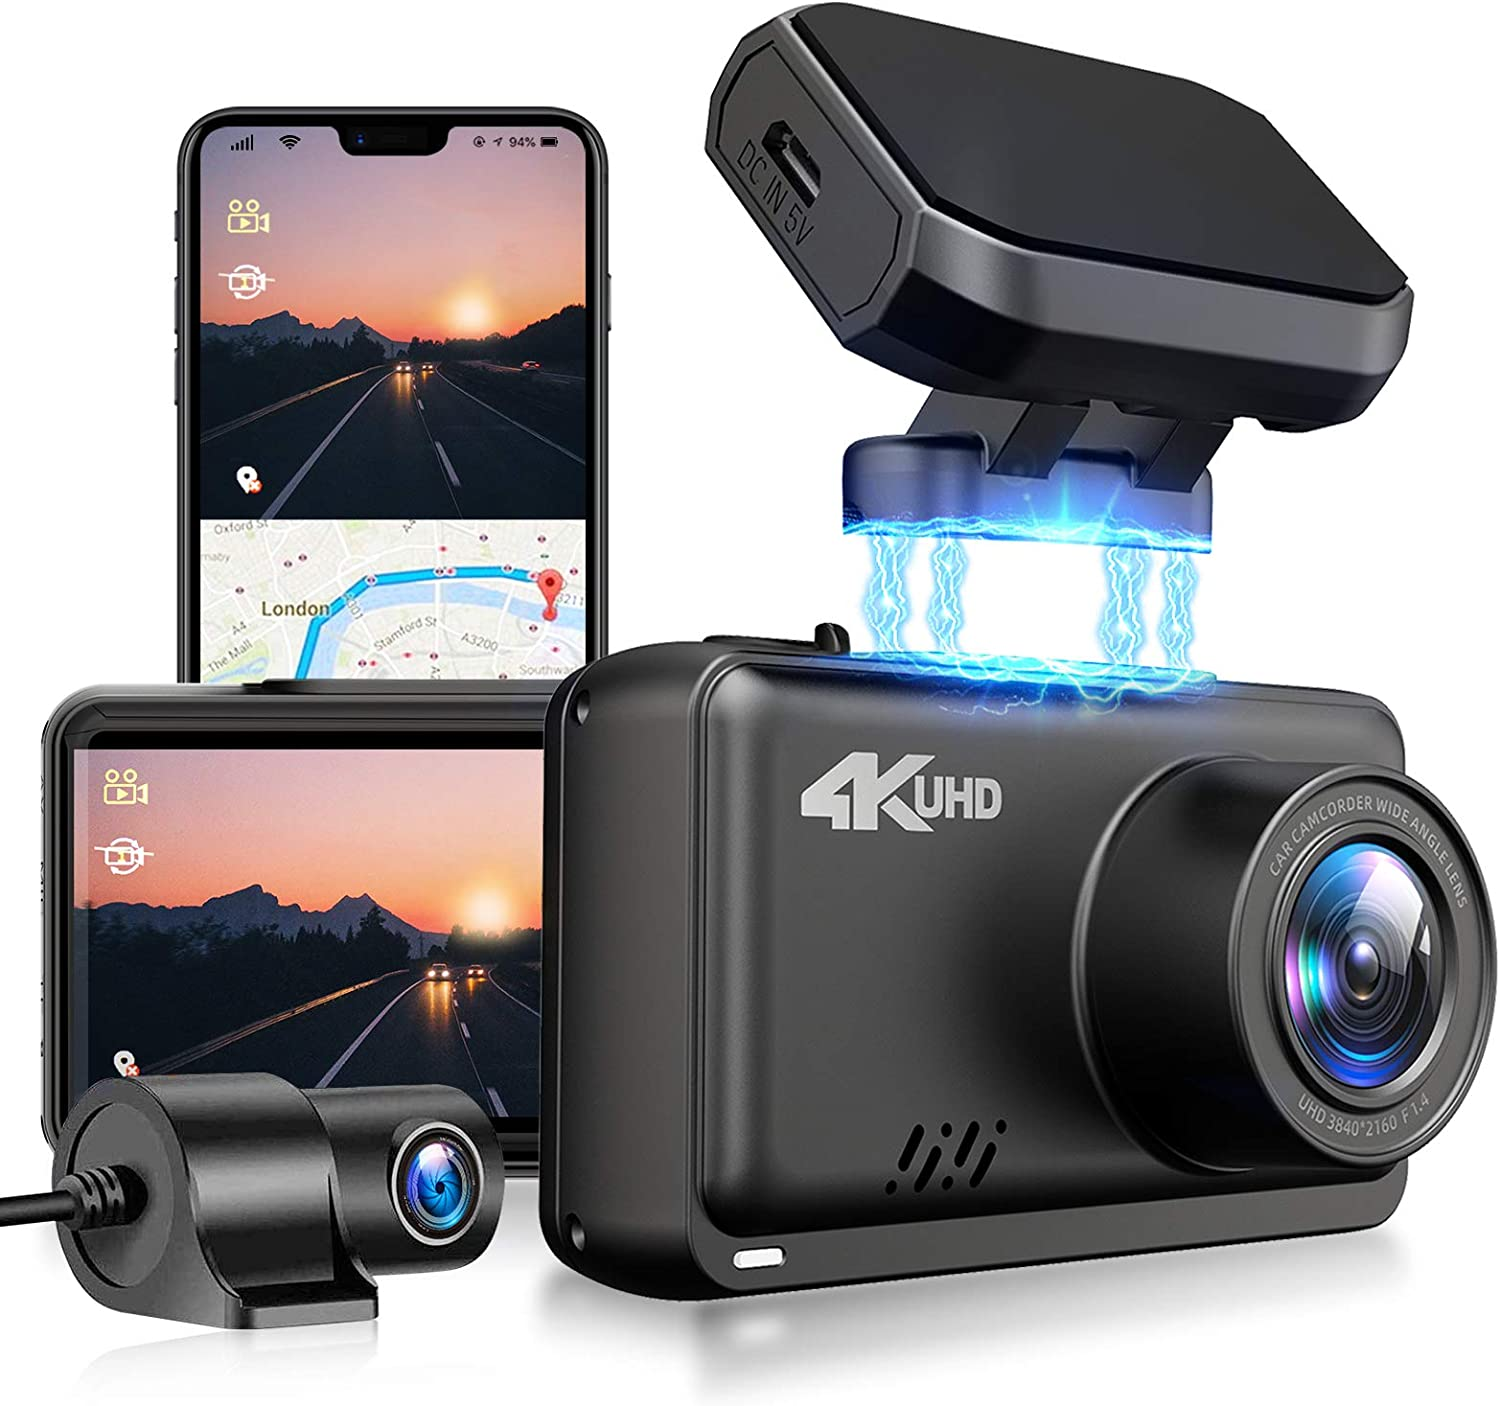 Amazon Com Jomise Dual Dash Cam 4k 1080p Built In Wifi Gps Car Dashboard Camera Recorder With Uhd 3840x2160p 2 45 Lcd 170 Wide Angle Wdr Night Vision G Sensor Max Support 128gb